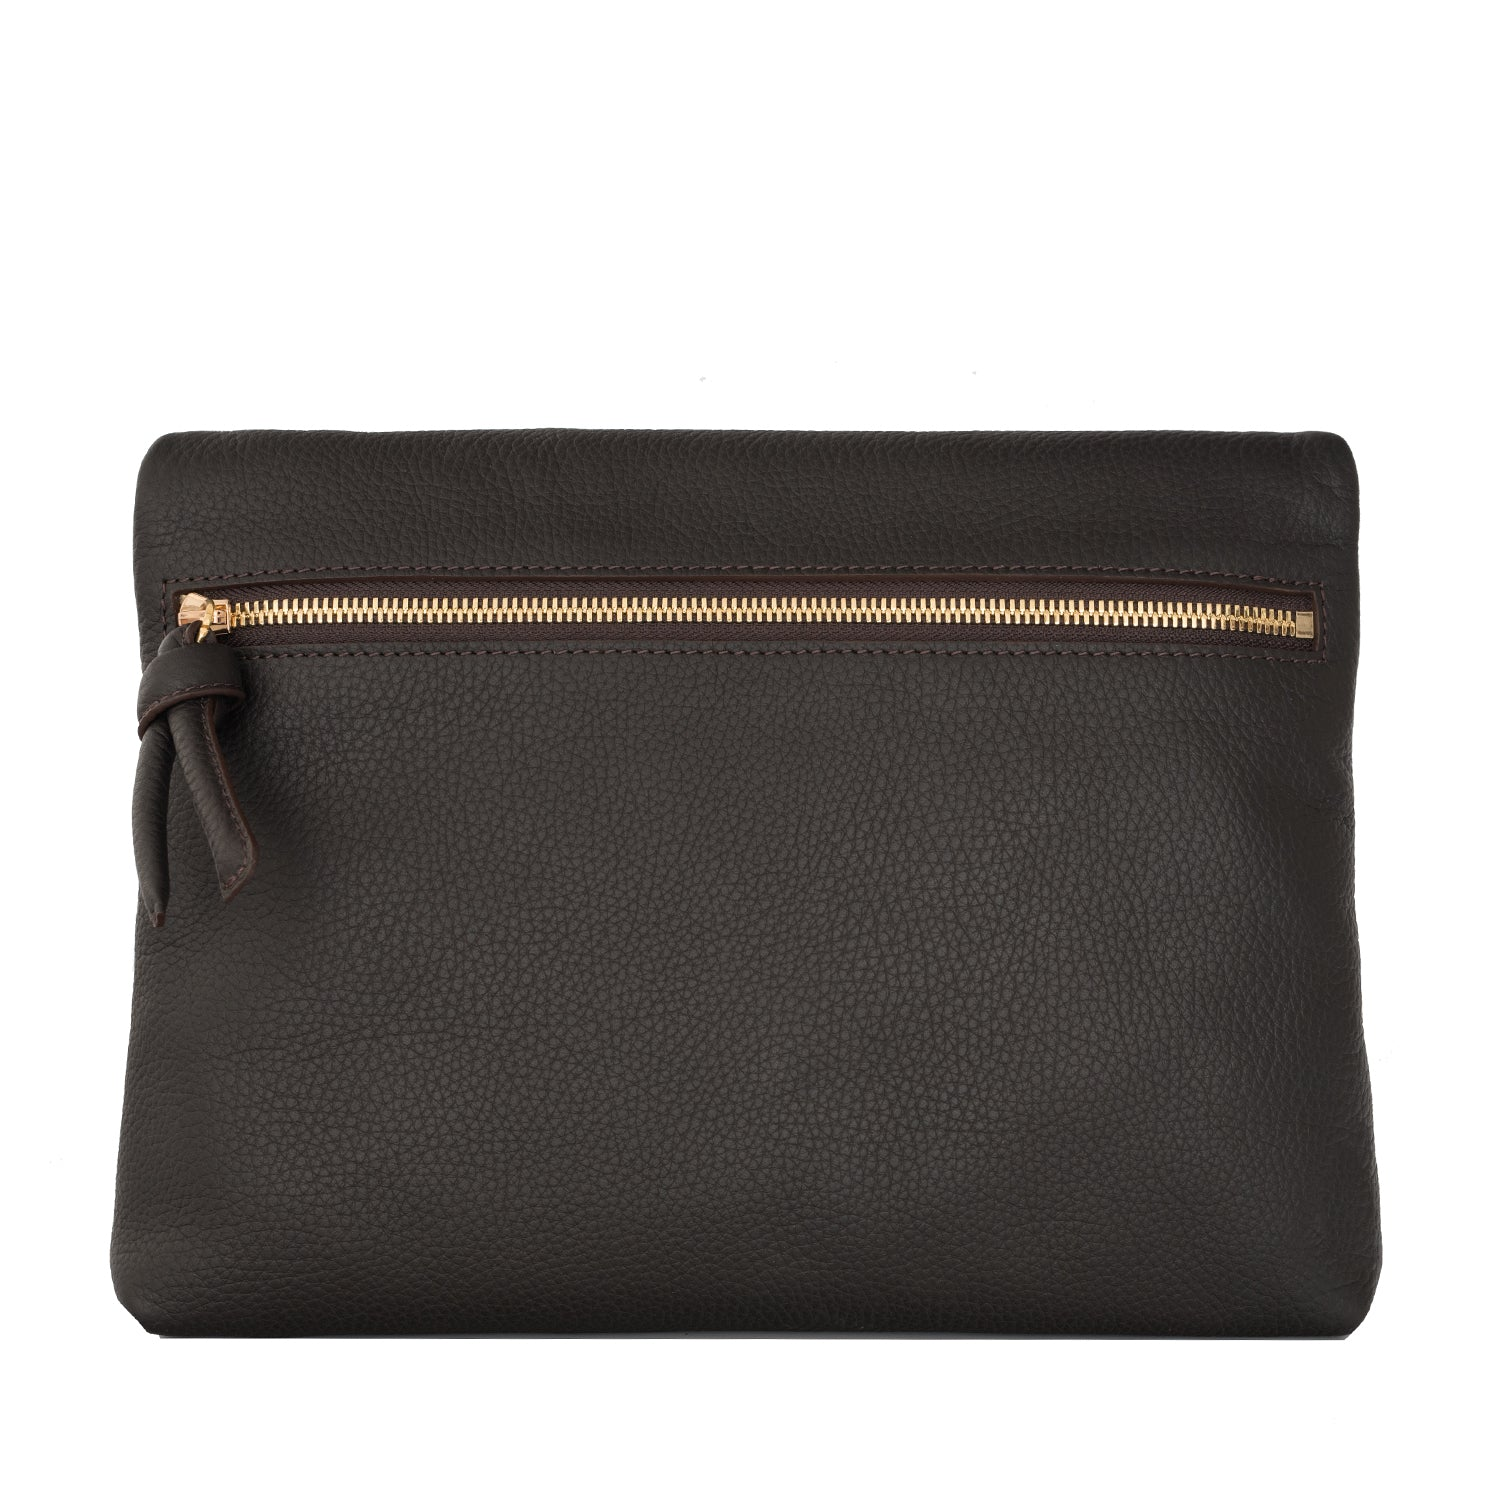 A brown convertible leather crossbody bag for women with a zipper that could be used as a clutch in the evening, back image.